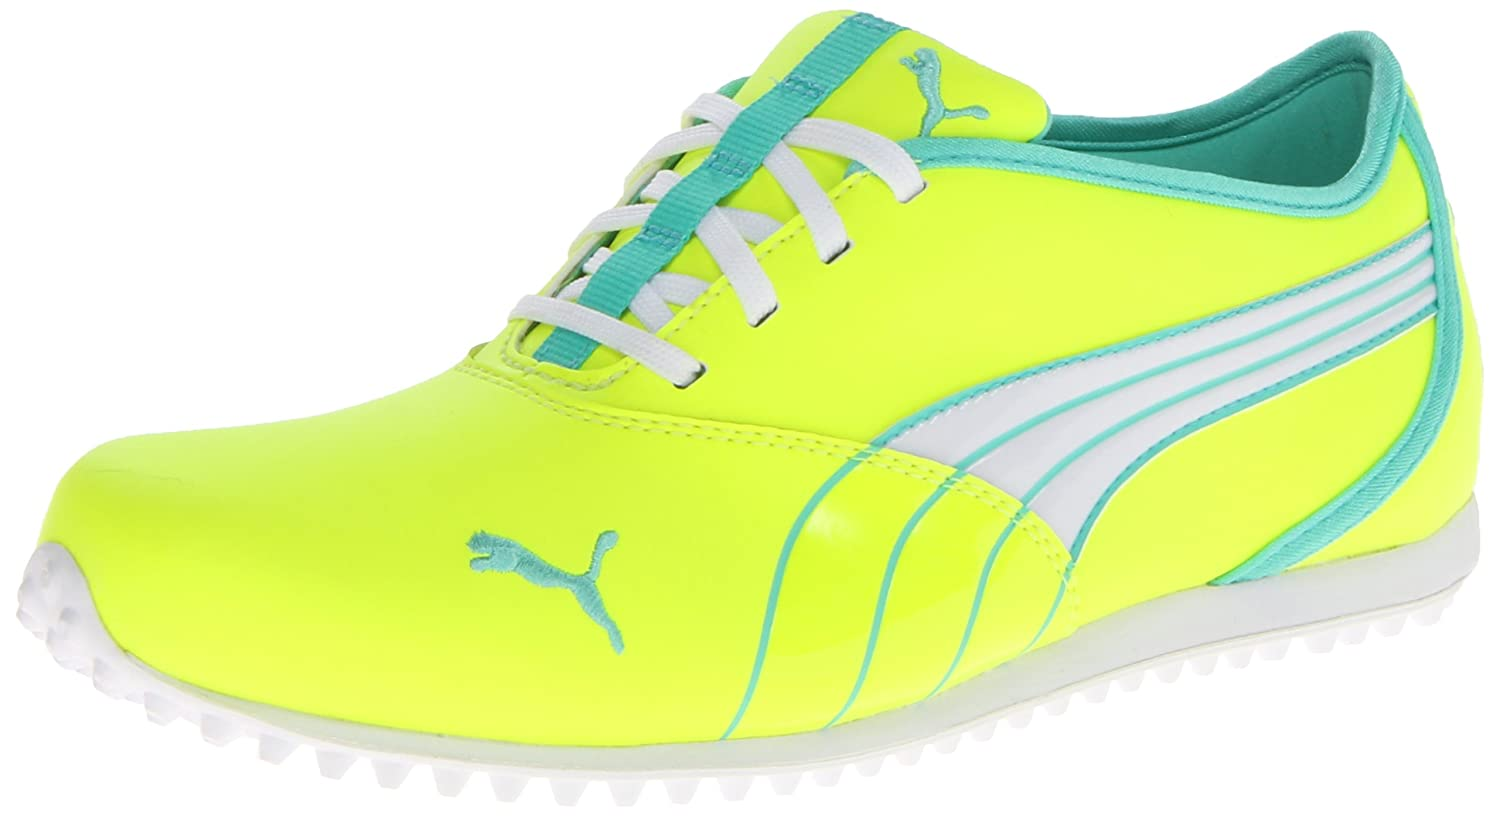 91e49a0b93c Puma Women s Monolite Golf Shoe